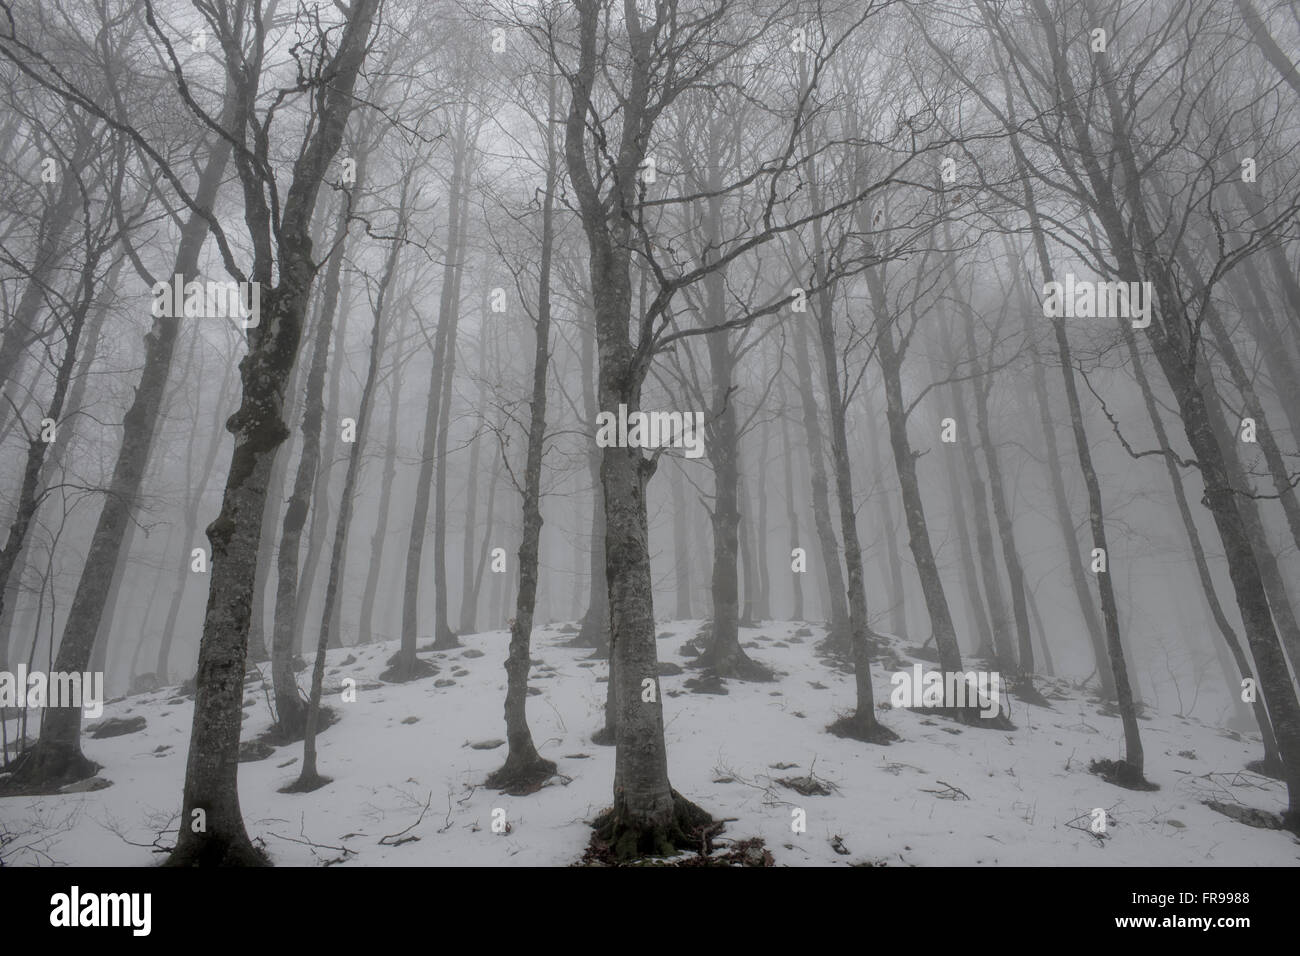 Birches (Fagus sylvatica), trunks in the fog, Forca d'Acero, Abruzzo, Italy - Stock Image